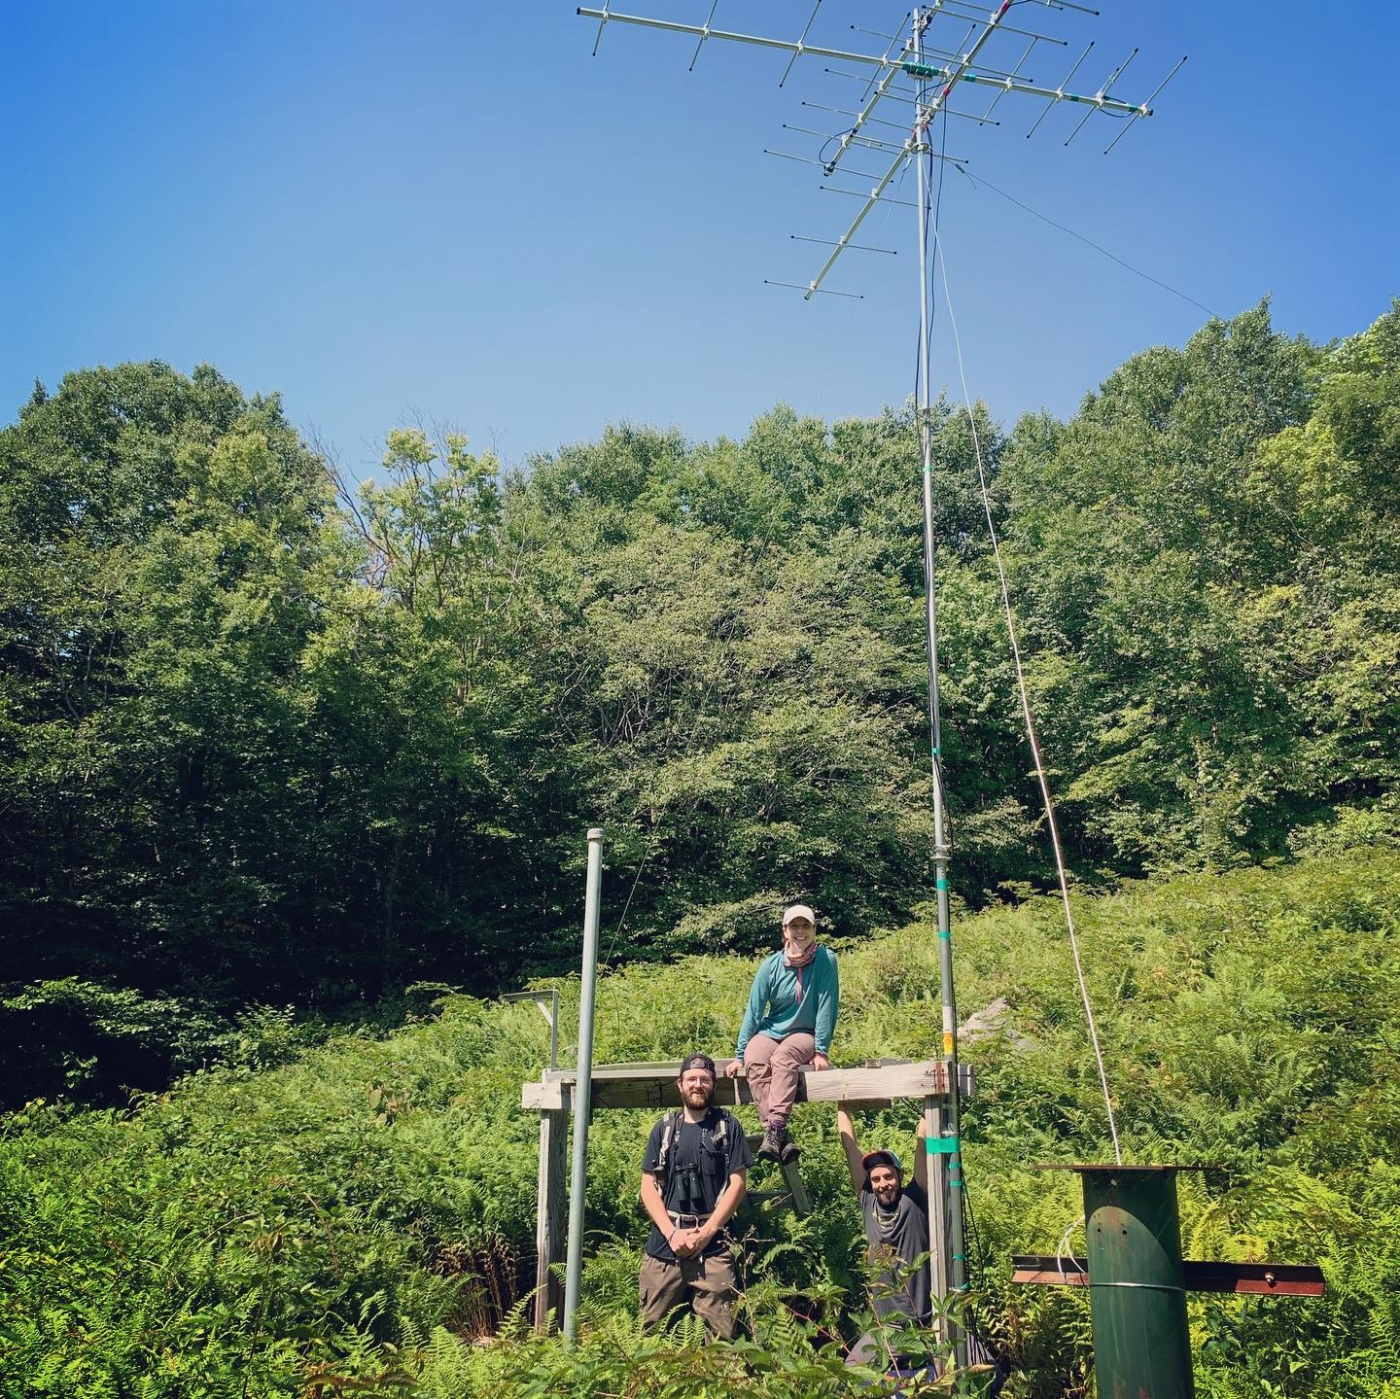 Field researchers sit below a radio tower in Hubbard Brook forest in New Hampshire. The tower will receive radio signals from birds fitted with radio transmitters